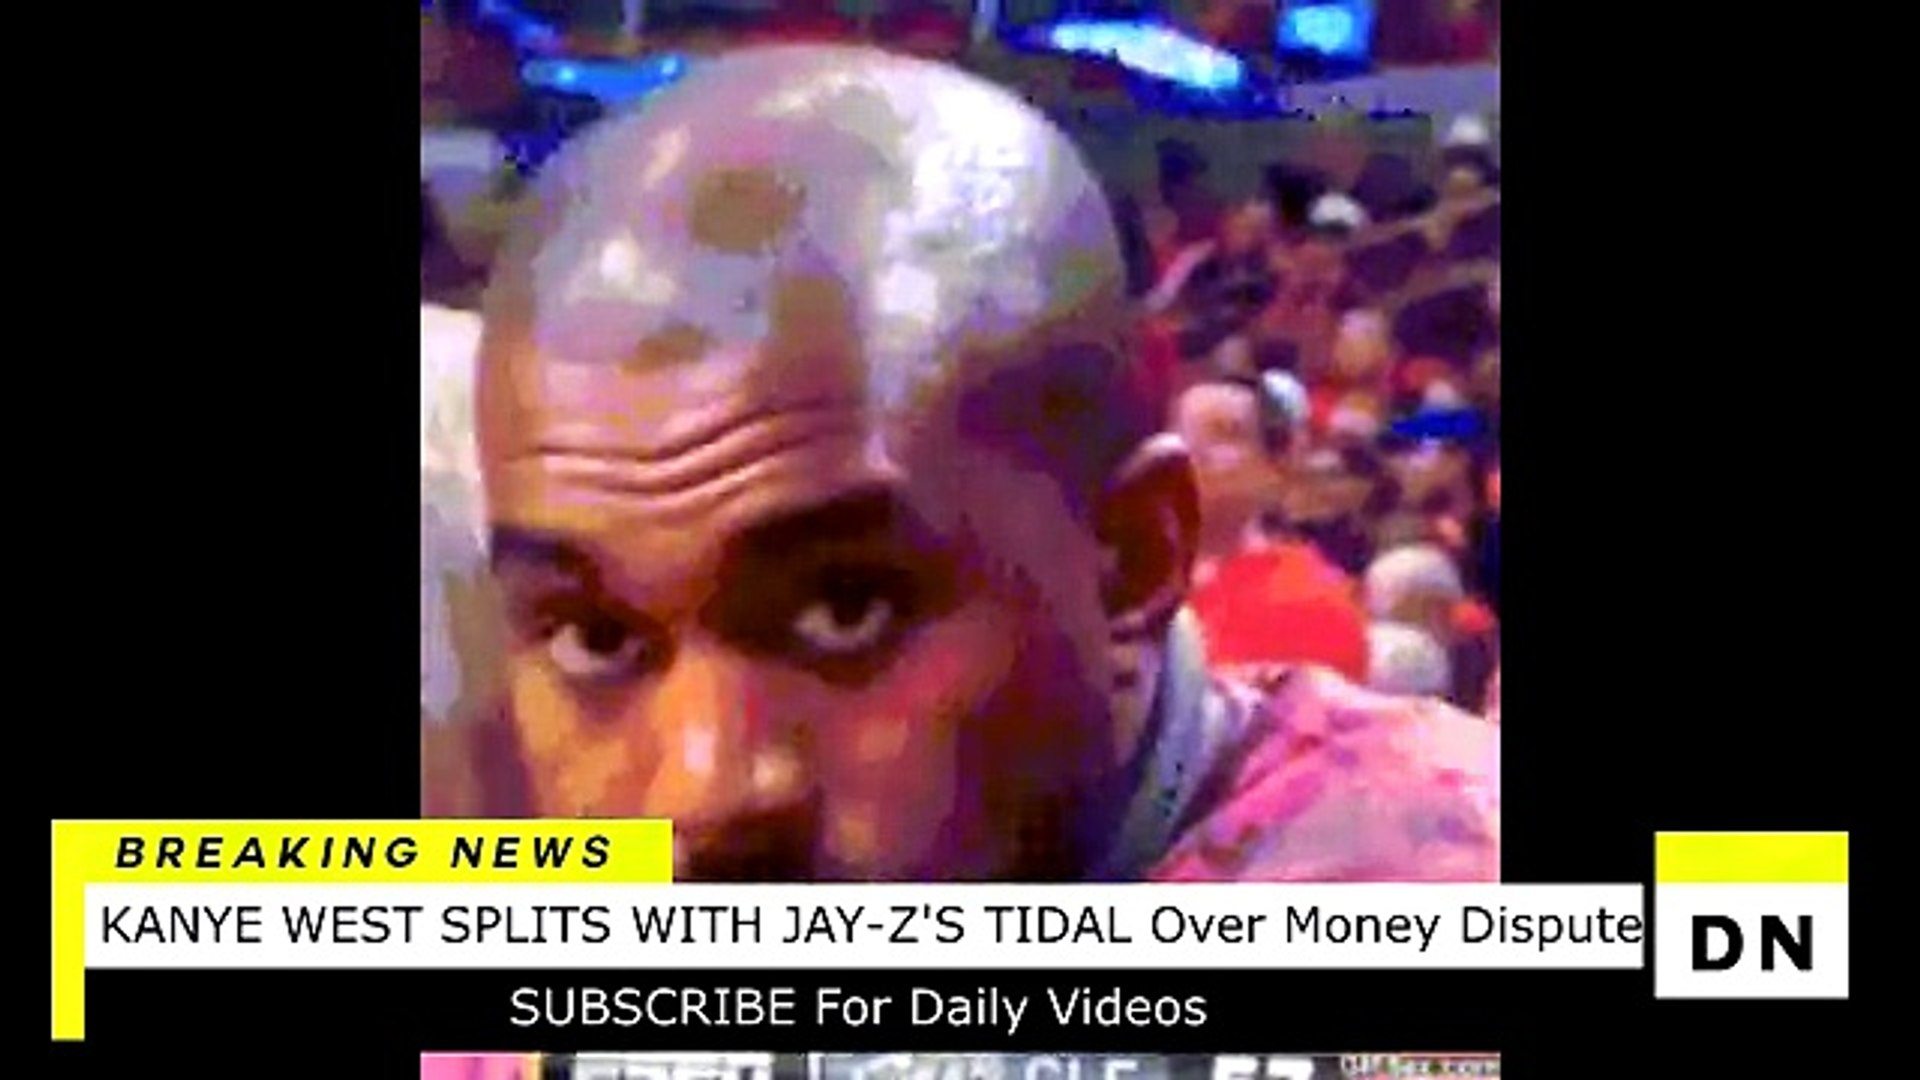 Kanye West LEAVES Jay Z Tidal Over 444 Diss on Kill Jay Z and Money Dispute